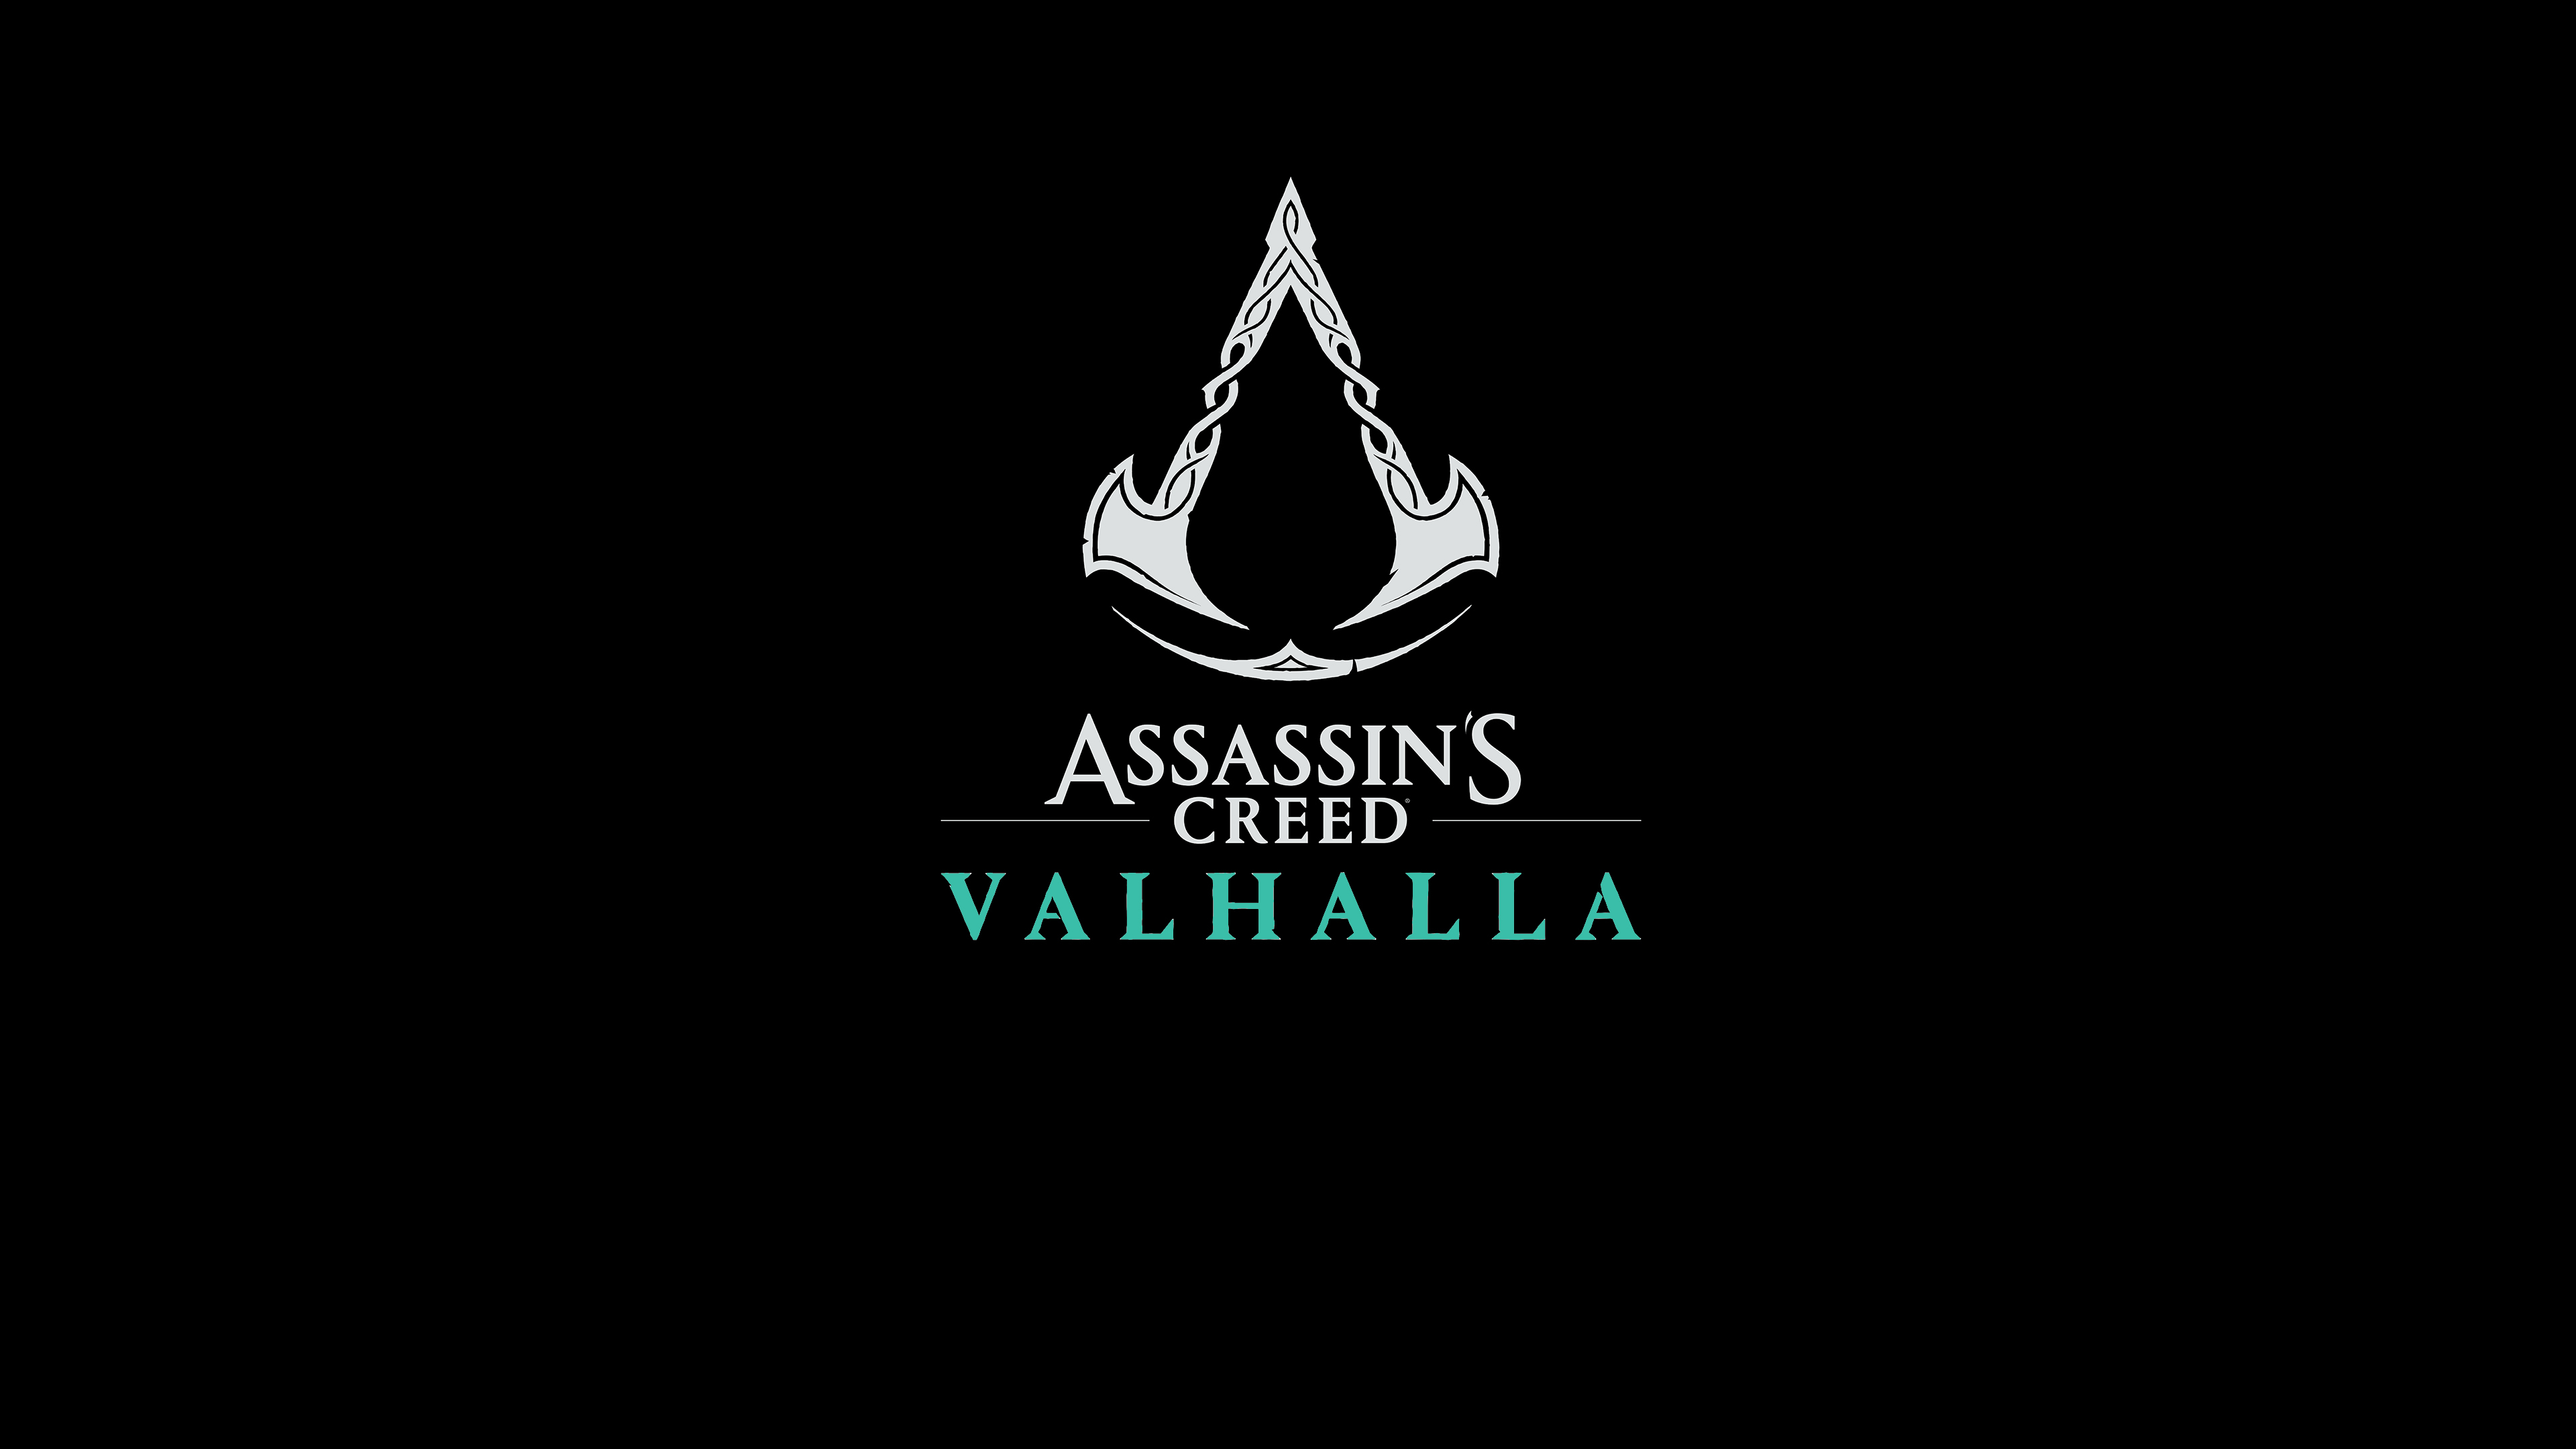 Assassin S Creed Valhalla 4k Game Wallpaper Hd Games 4k Wallpapers Images Photos And Background